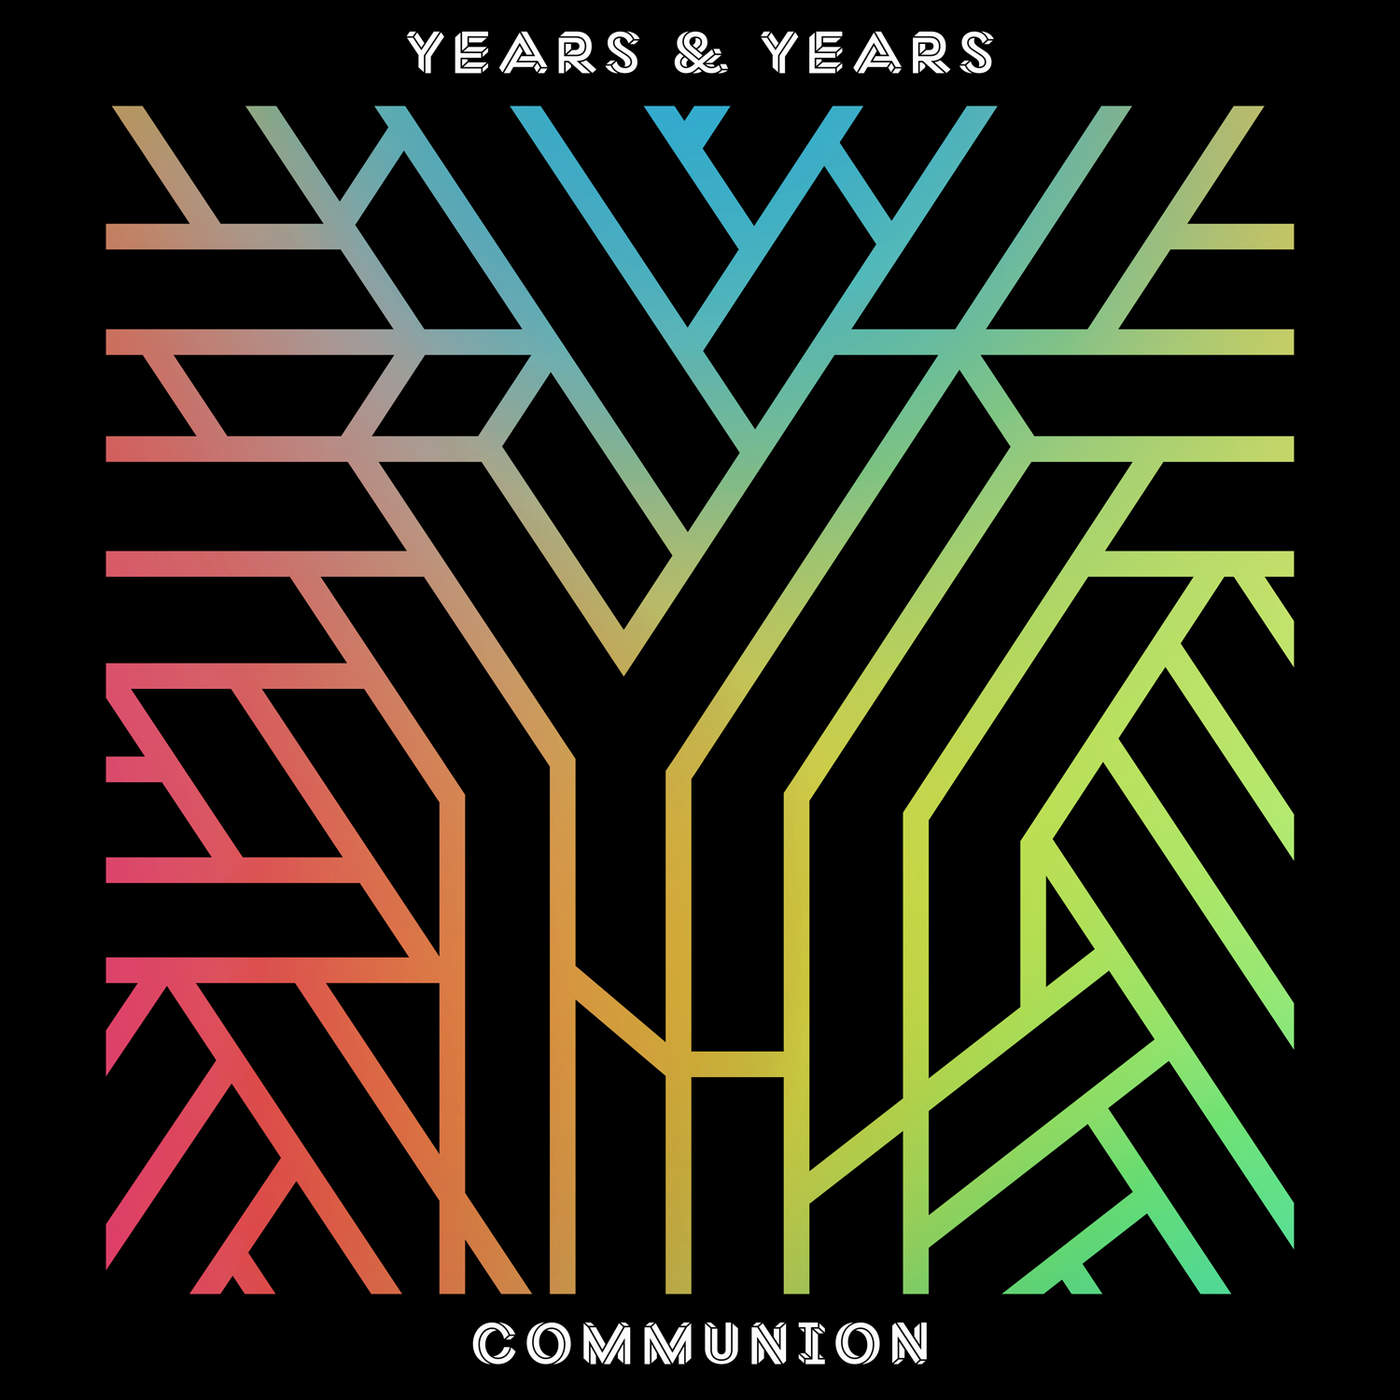 Years years communion 2015 1400x1400 final